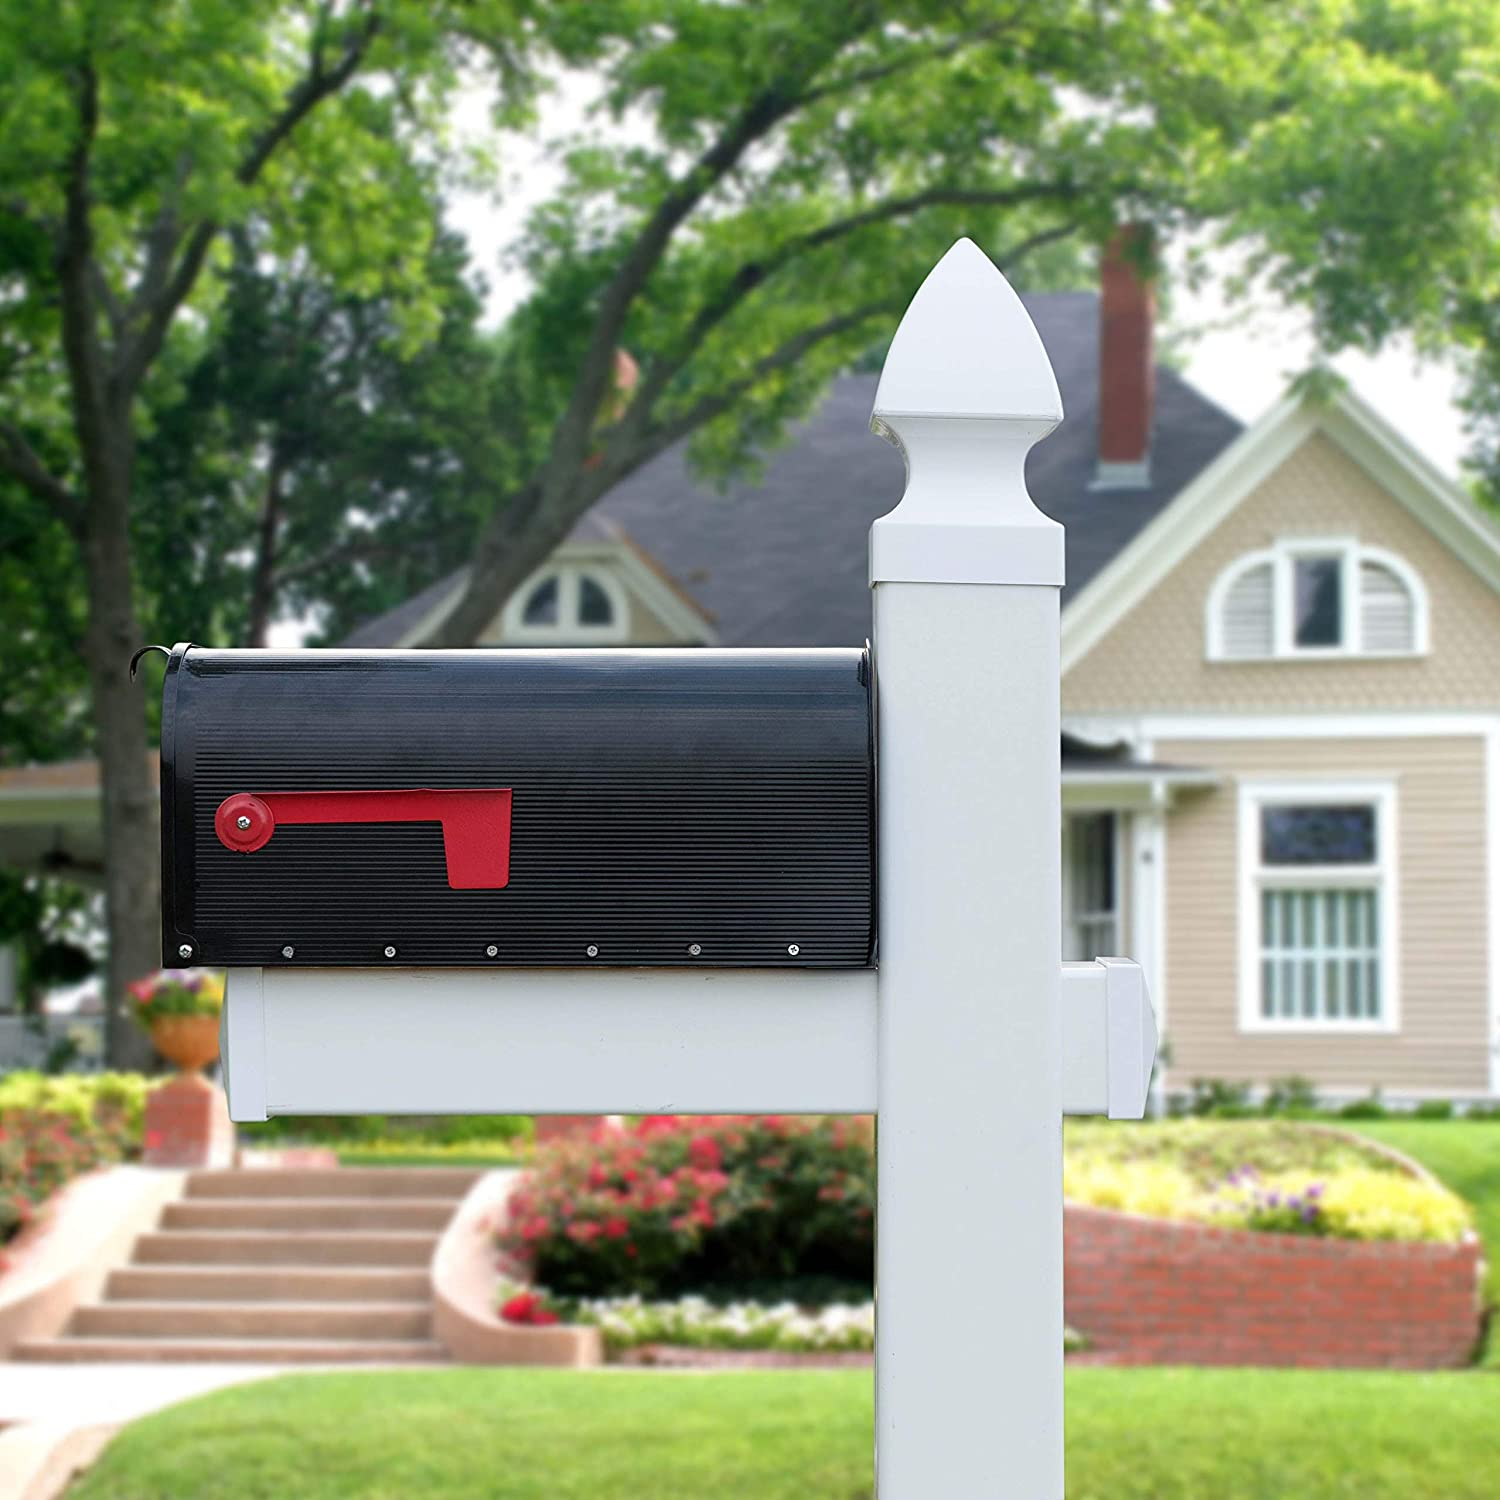 Gardenised QI003851 Metal Mailbox with White Vinyl Mail Post